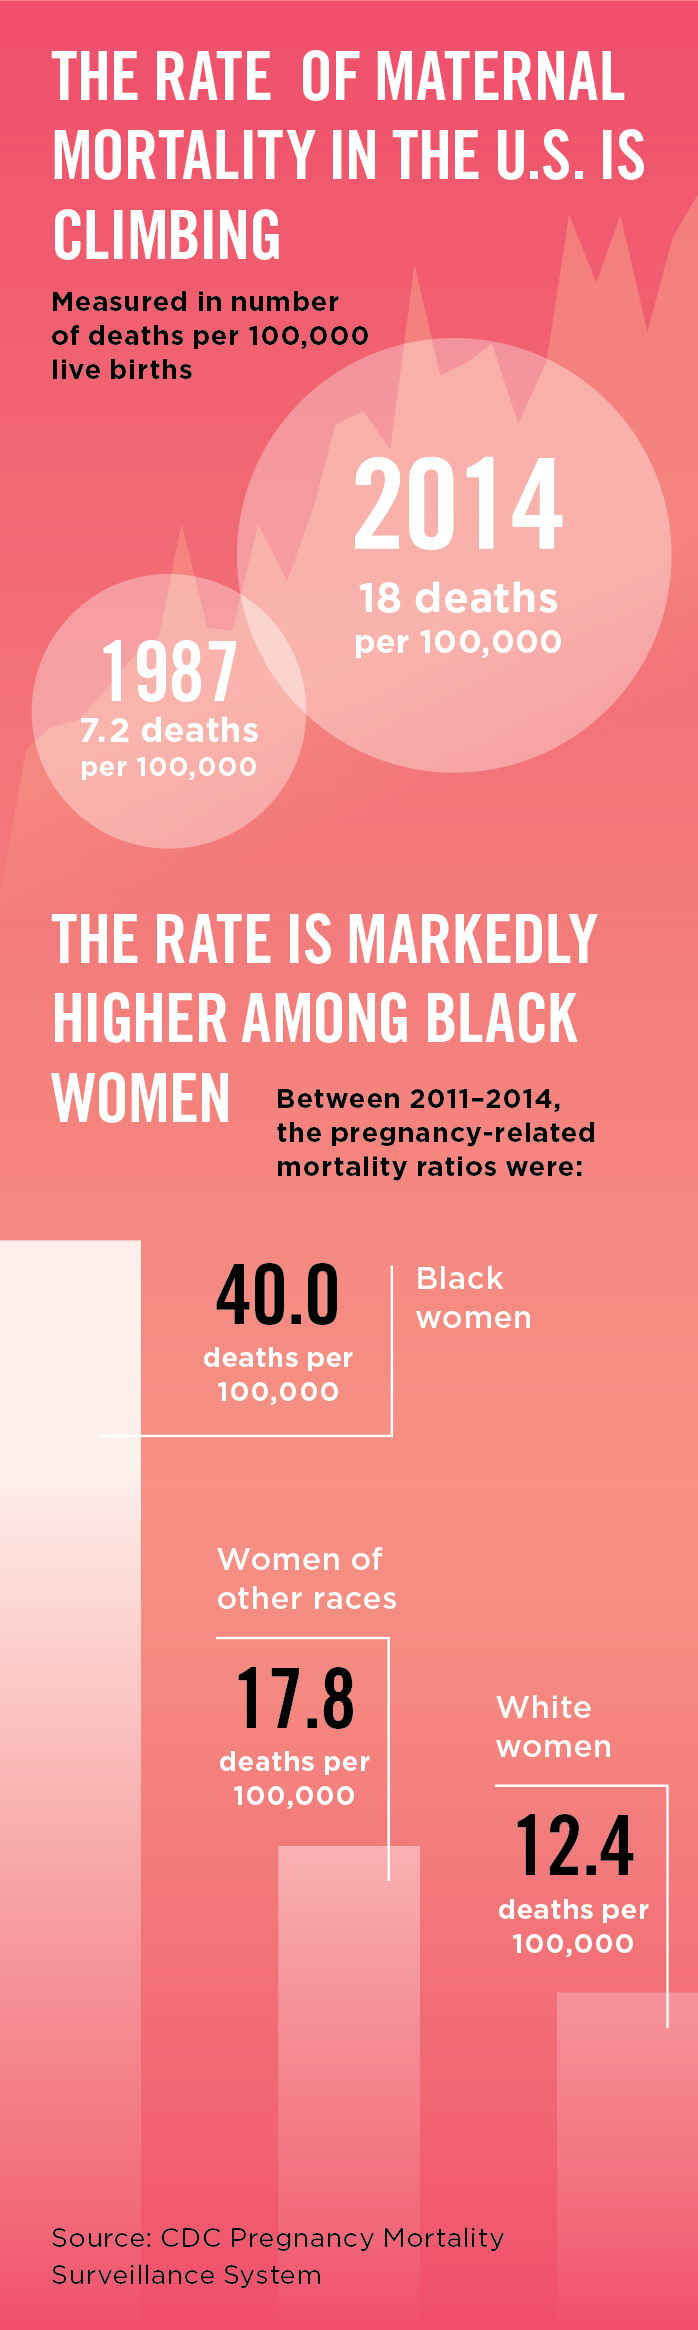 The Rate of Maternal Mortality in the U.S is Climbing